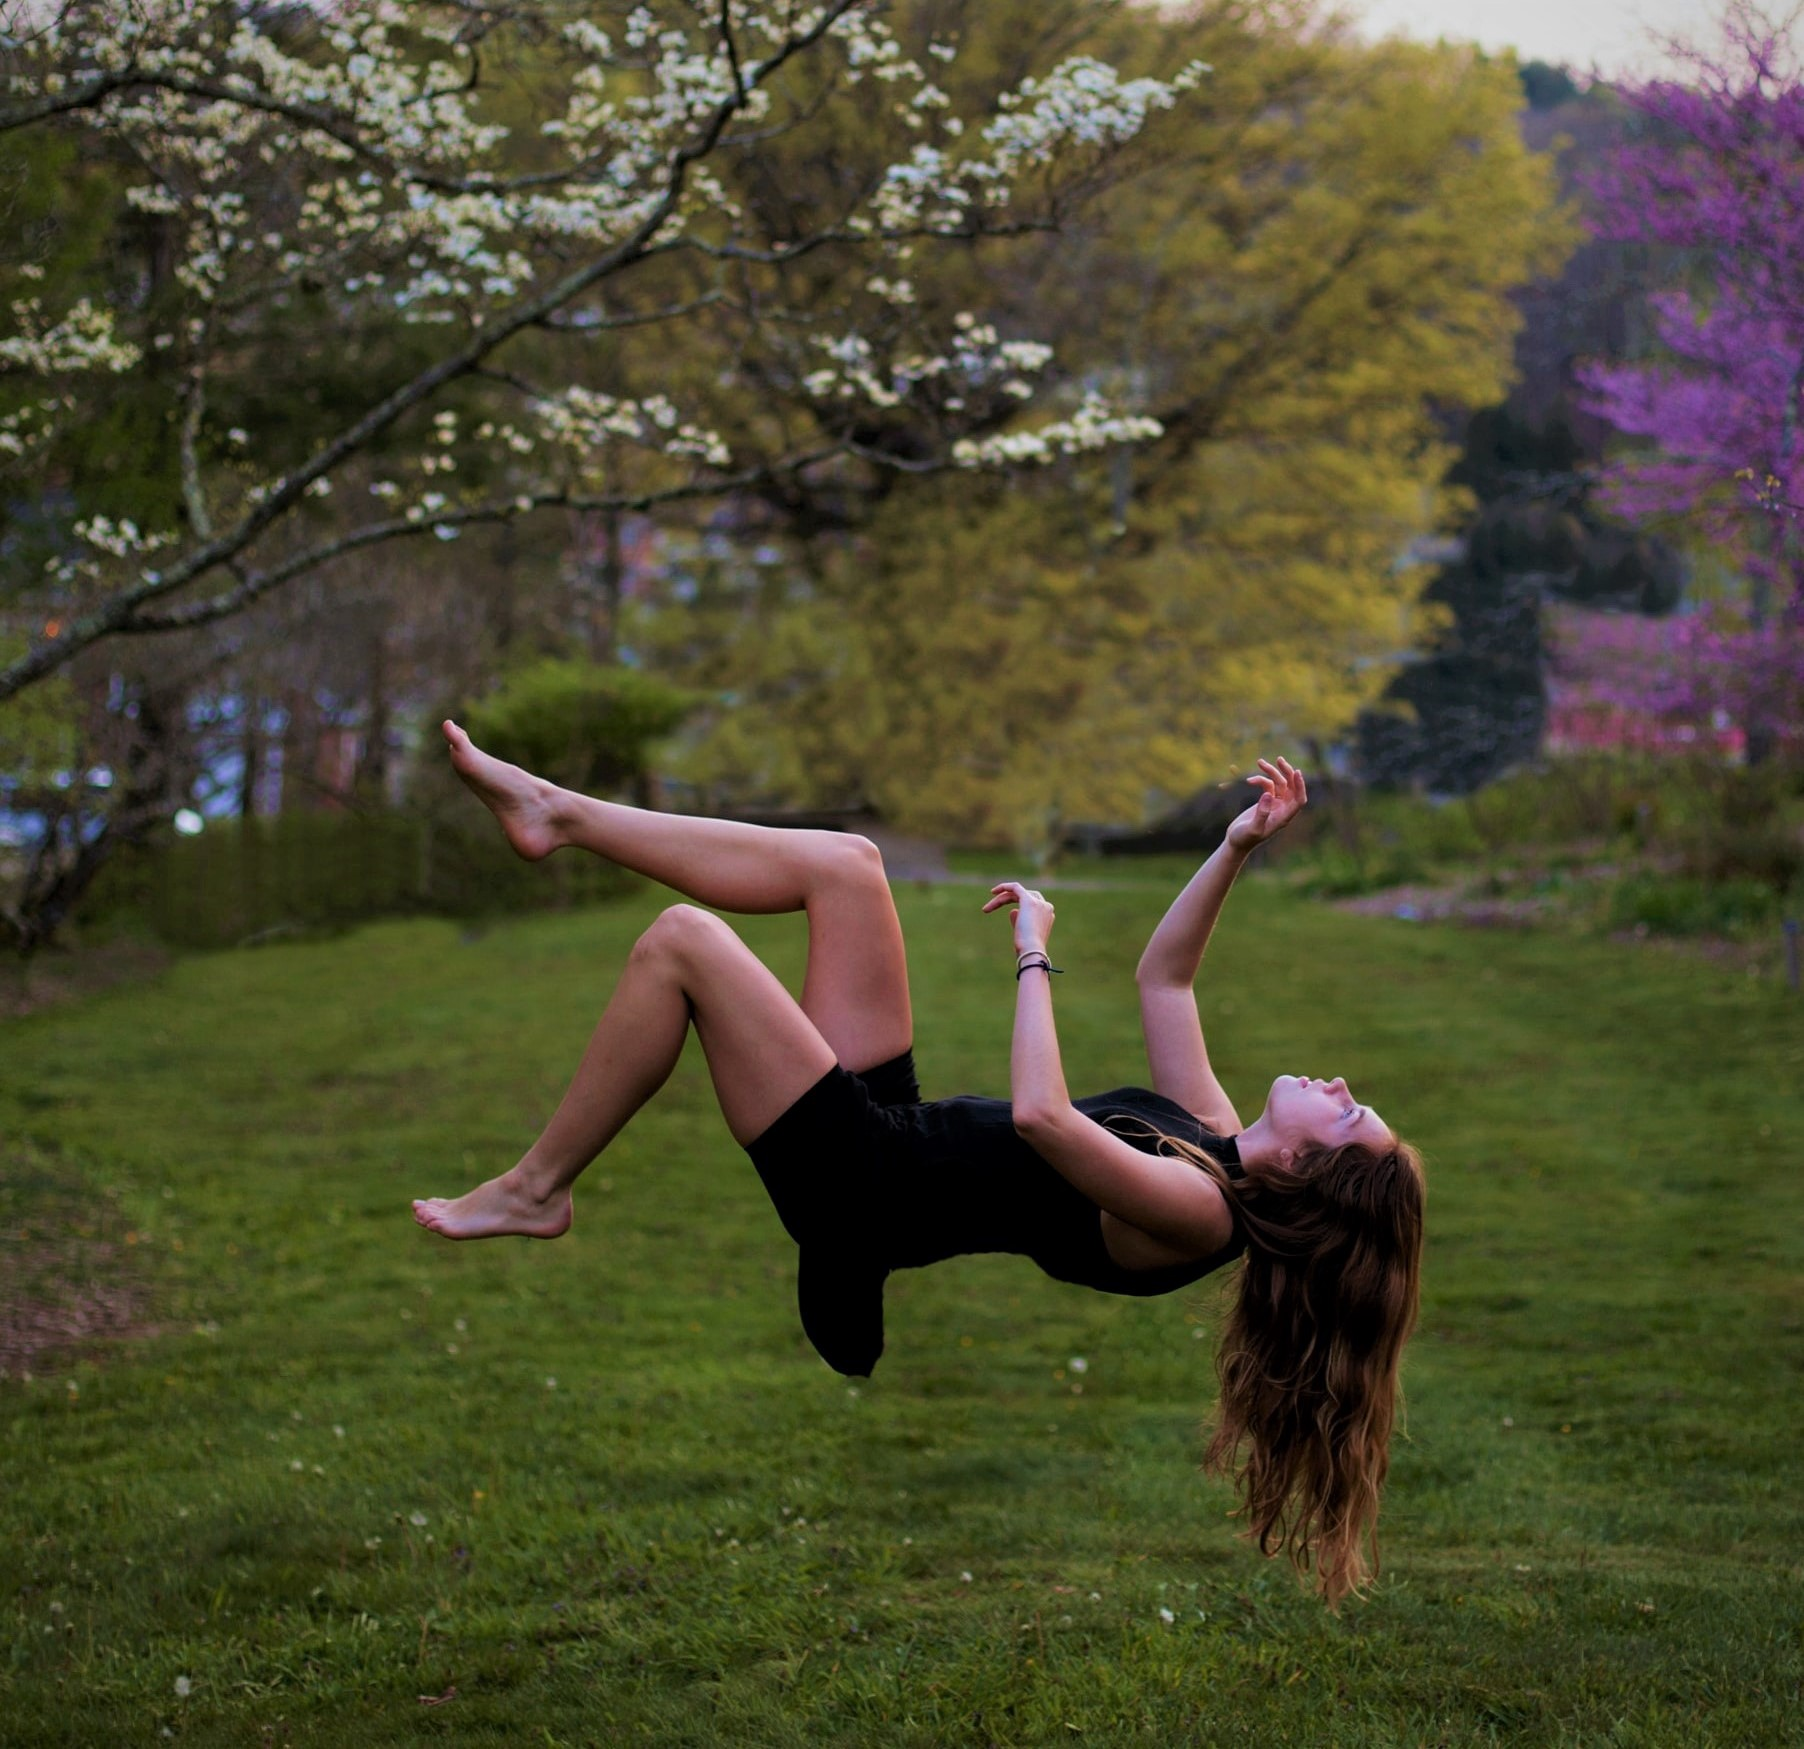 girl with long dark hair wearing black dress floating in air above grassy lawn